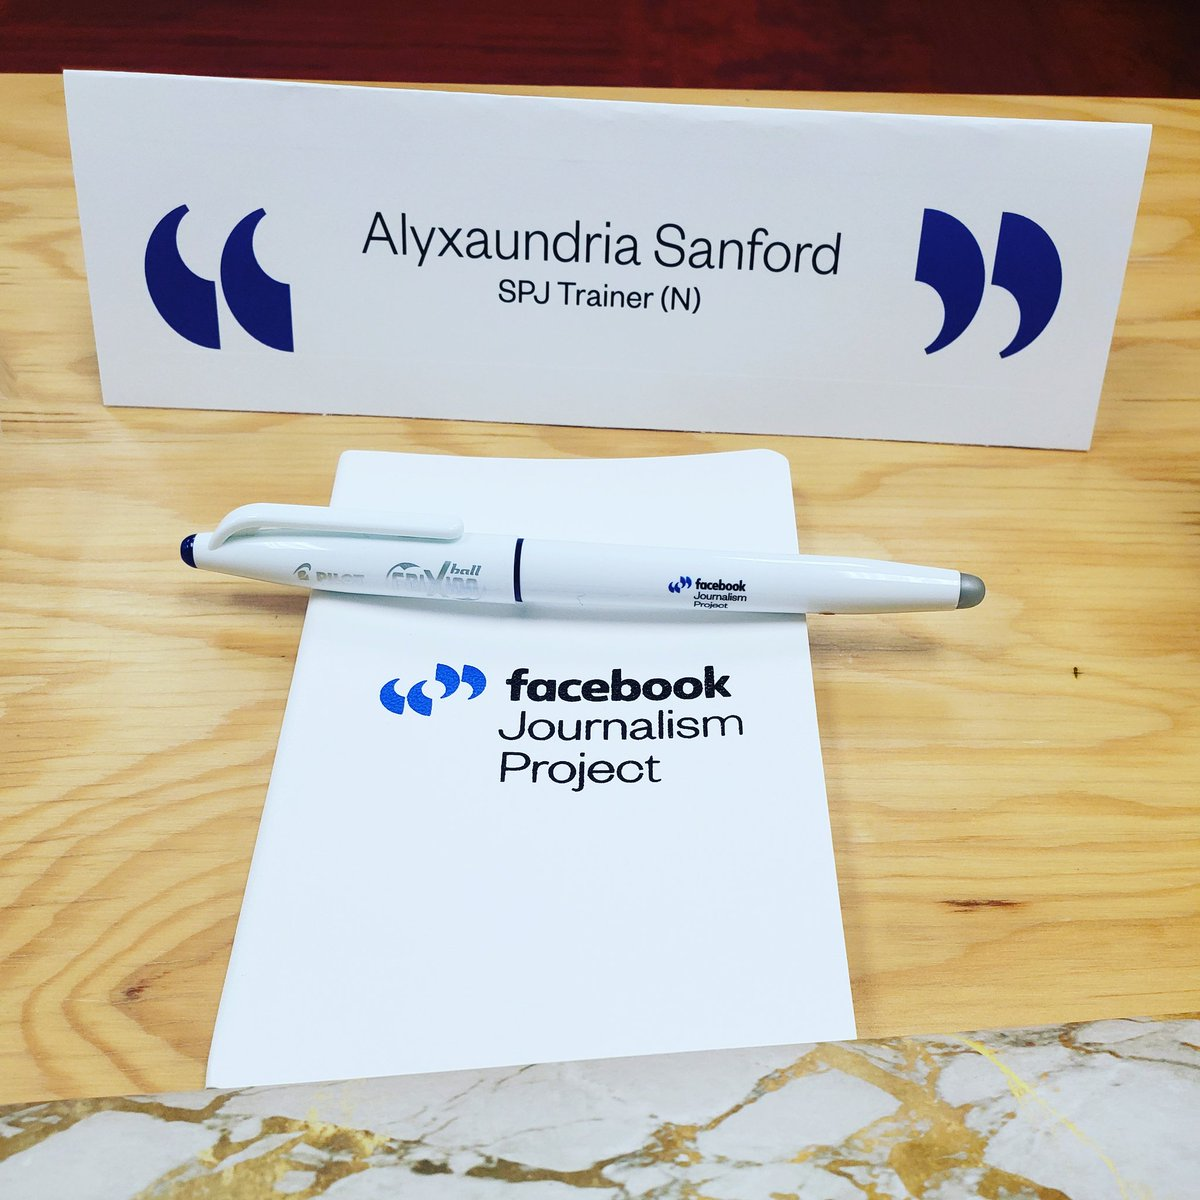 Yesterday was my first day of training for the SPJ/Facebook Journalism Project. They send us to newsrooms and colleges across the country to offer FREE digital training. Super excited for day 2! #trainingday <br>http://pic.twitter.com/uxLUFwqBxE – à Facebook NY